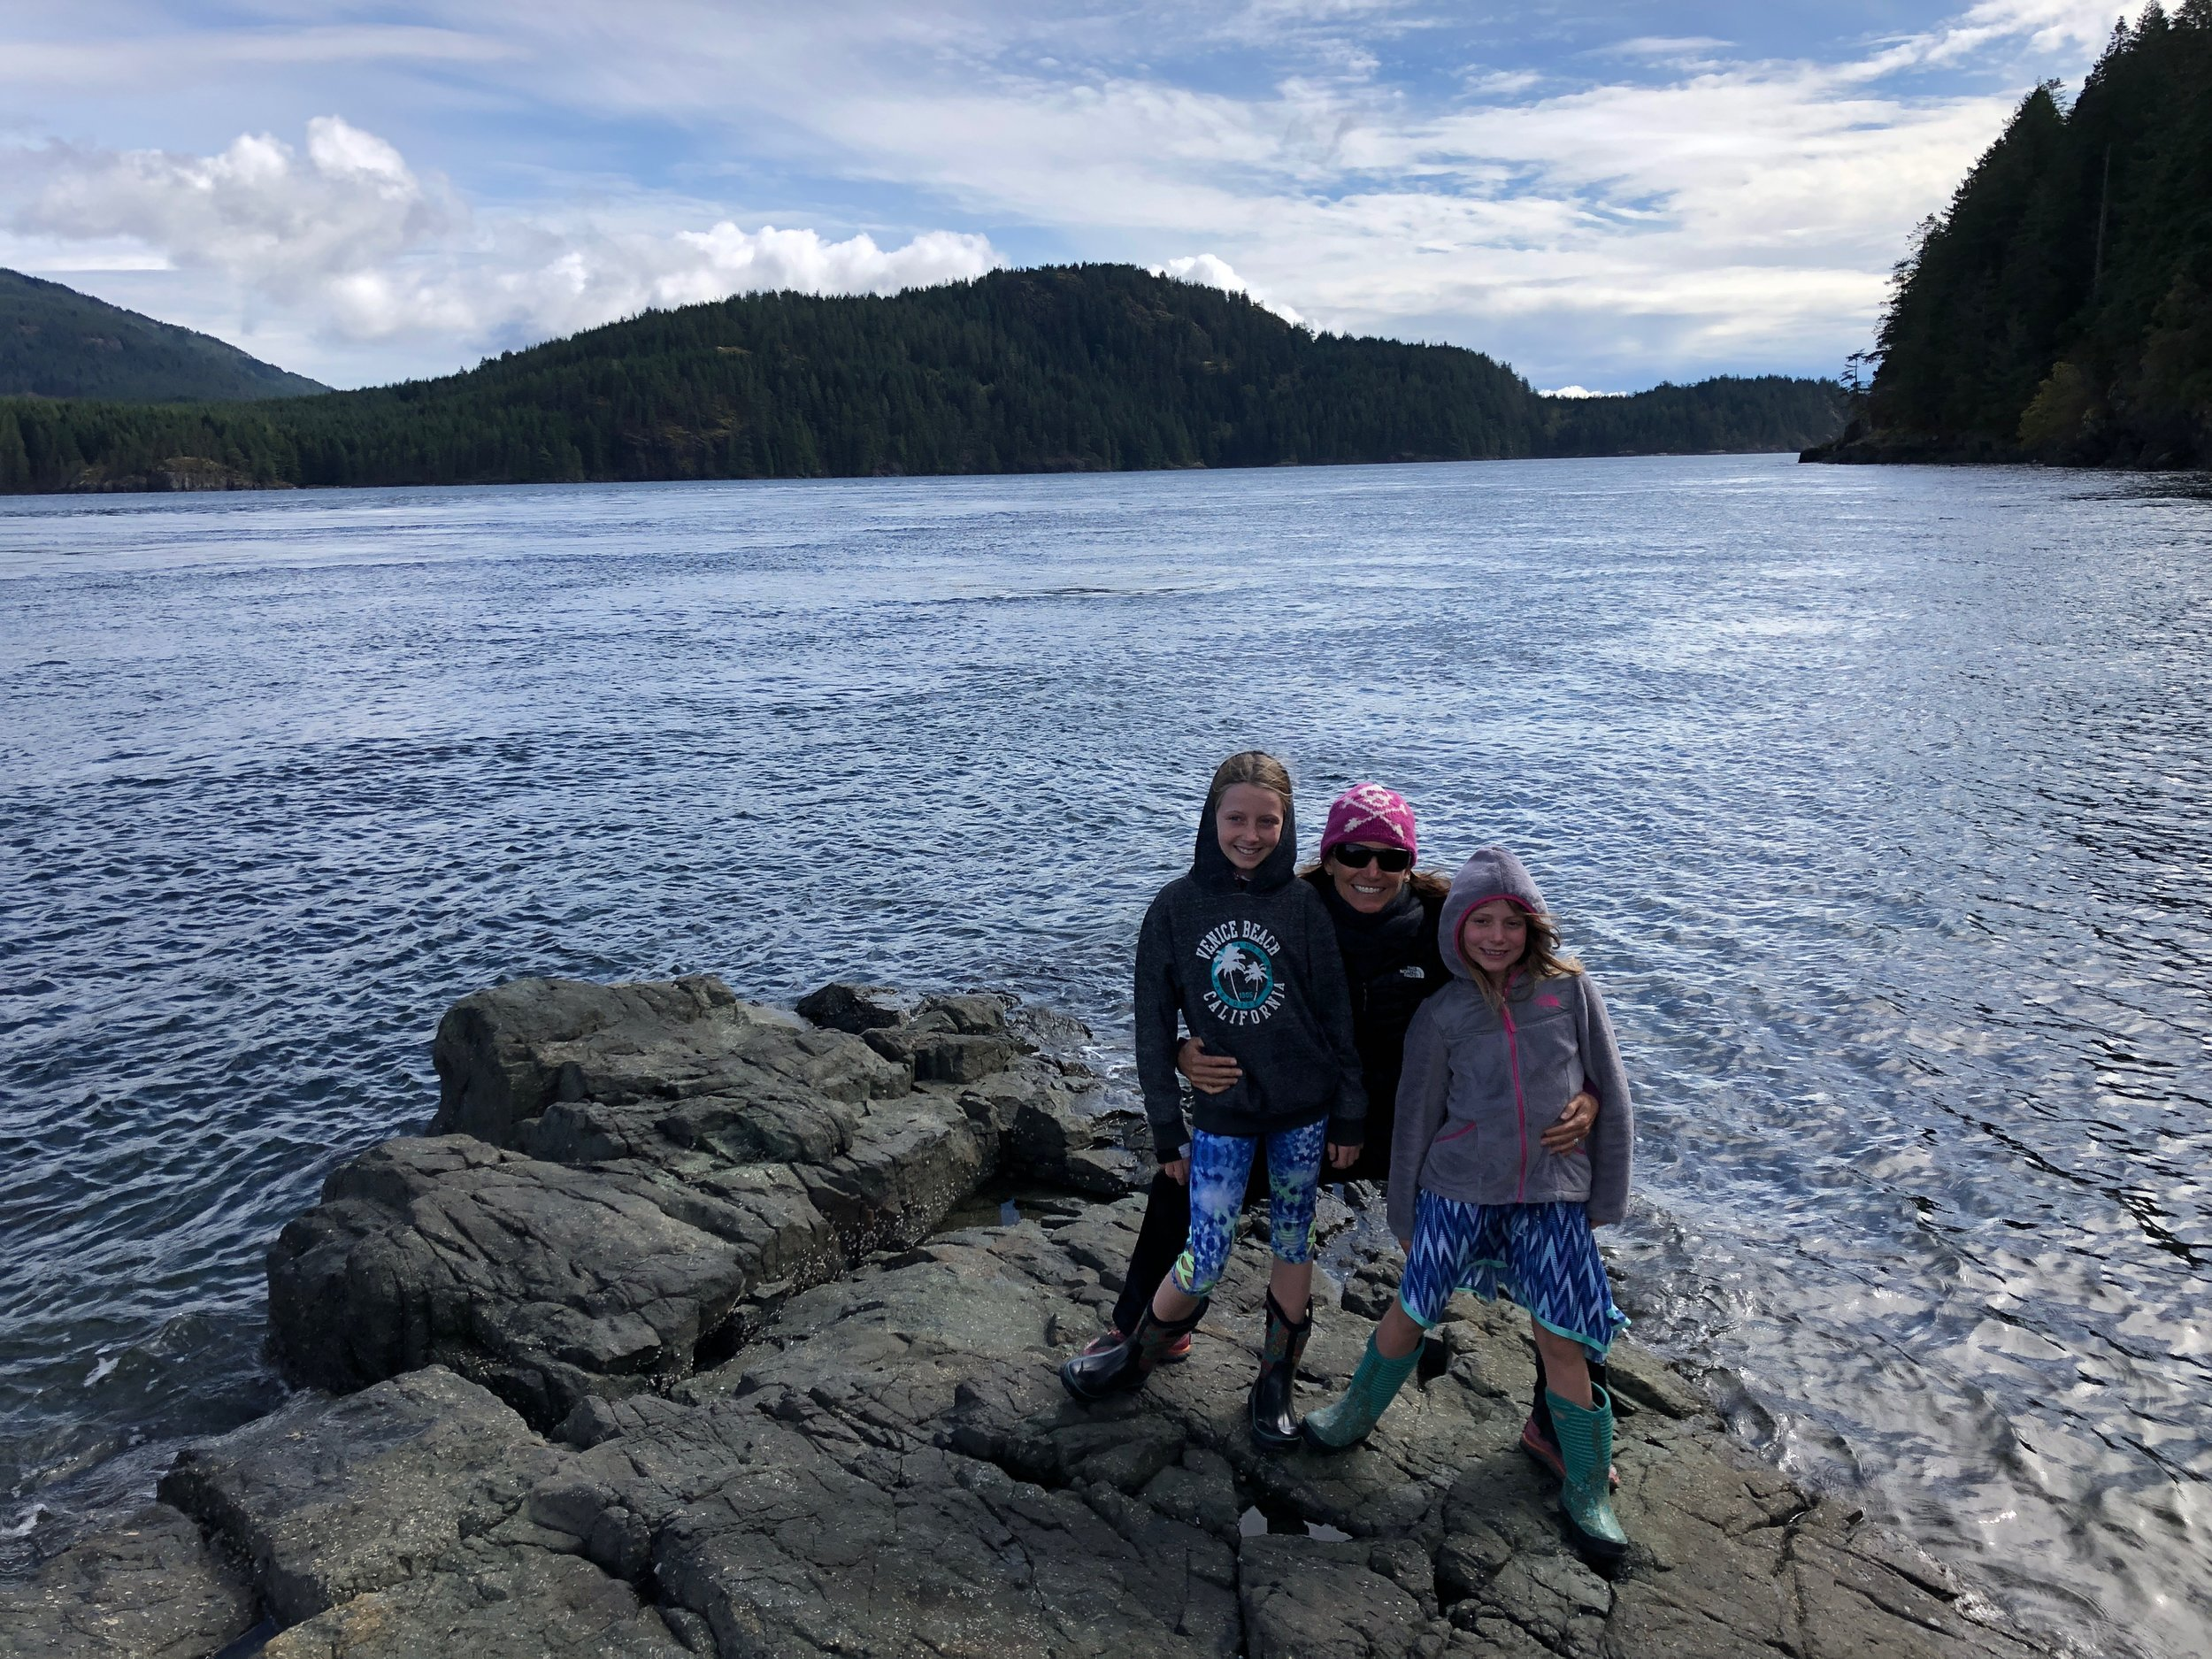 We had fun checking out the tide pools in the rocks